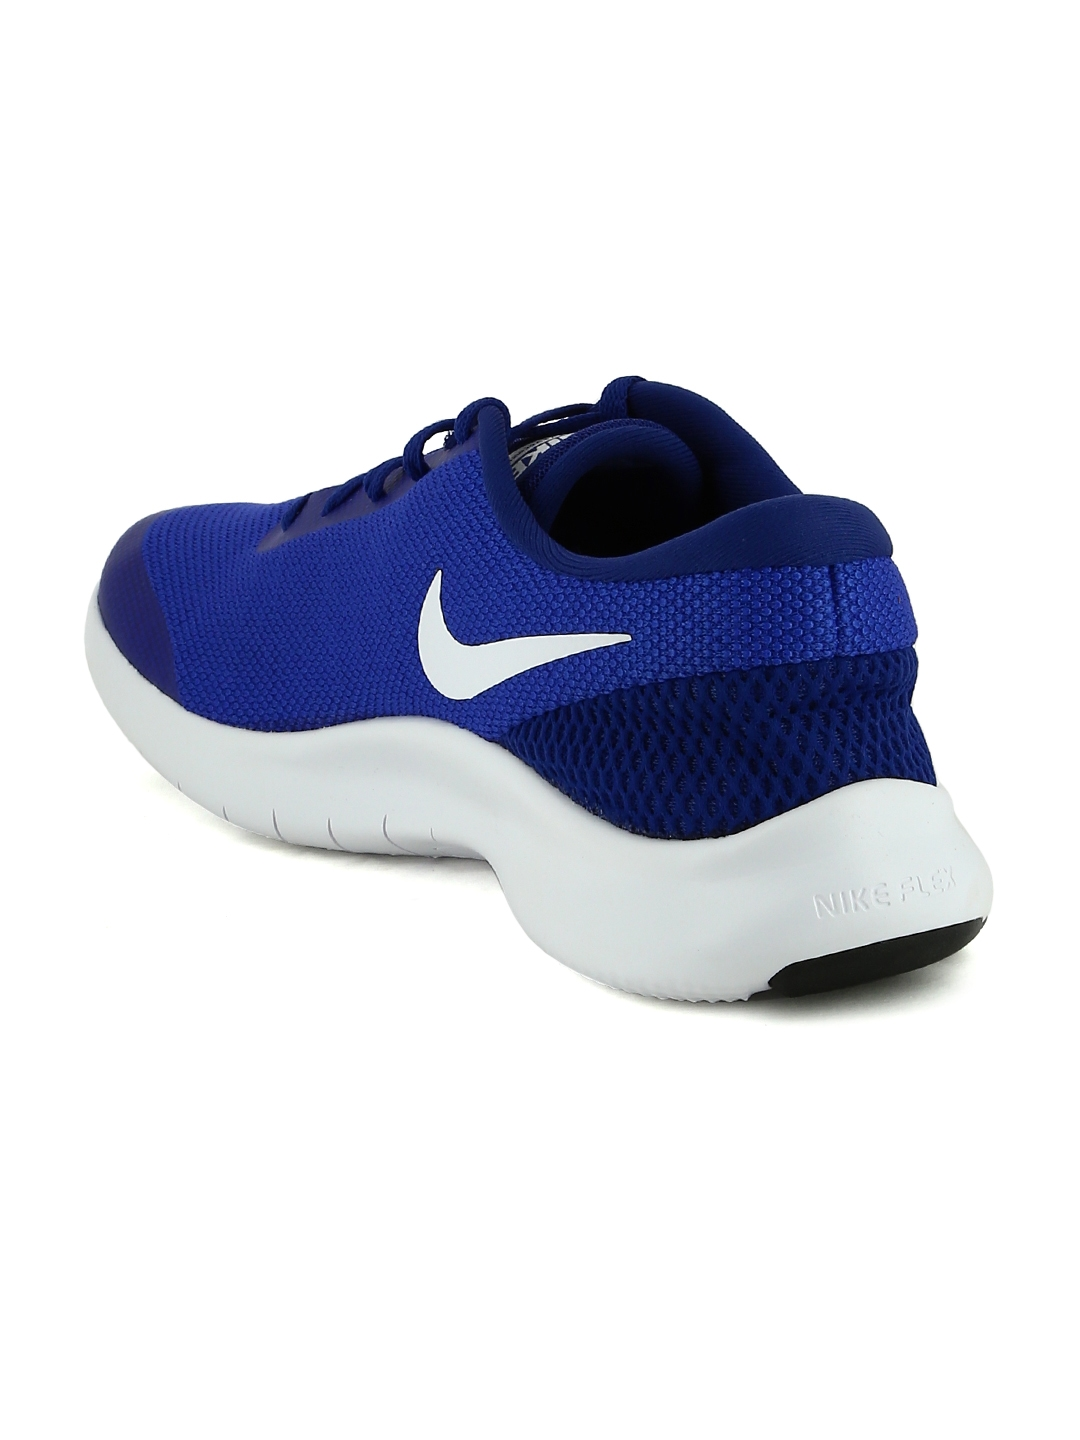 0709d43bfb1e Buy Nike Men Blue FLEX EXPERIENCE RN 7 Running Shoes - Sports Shoes ...